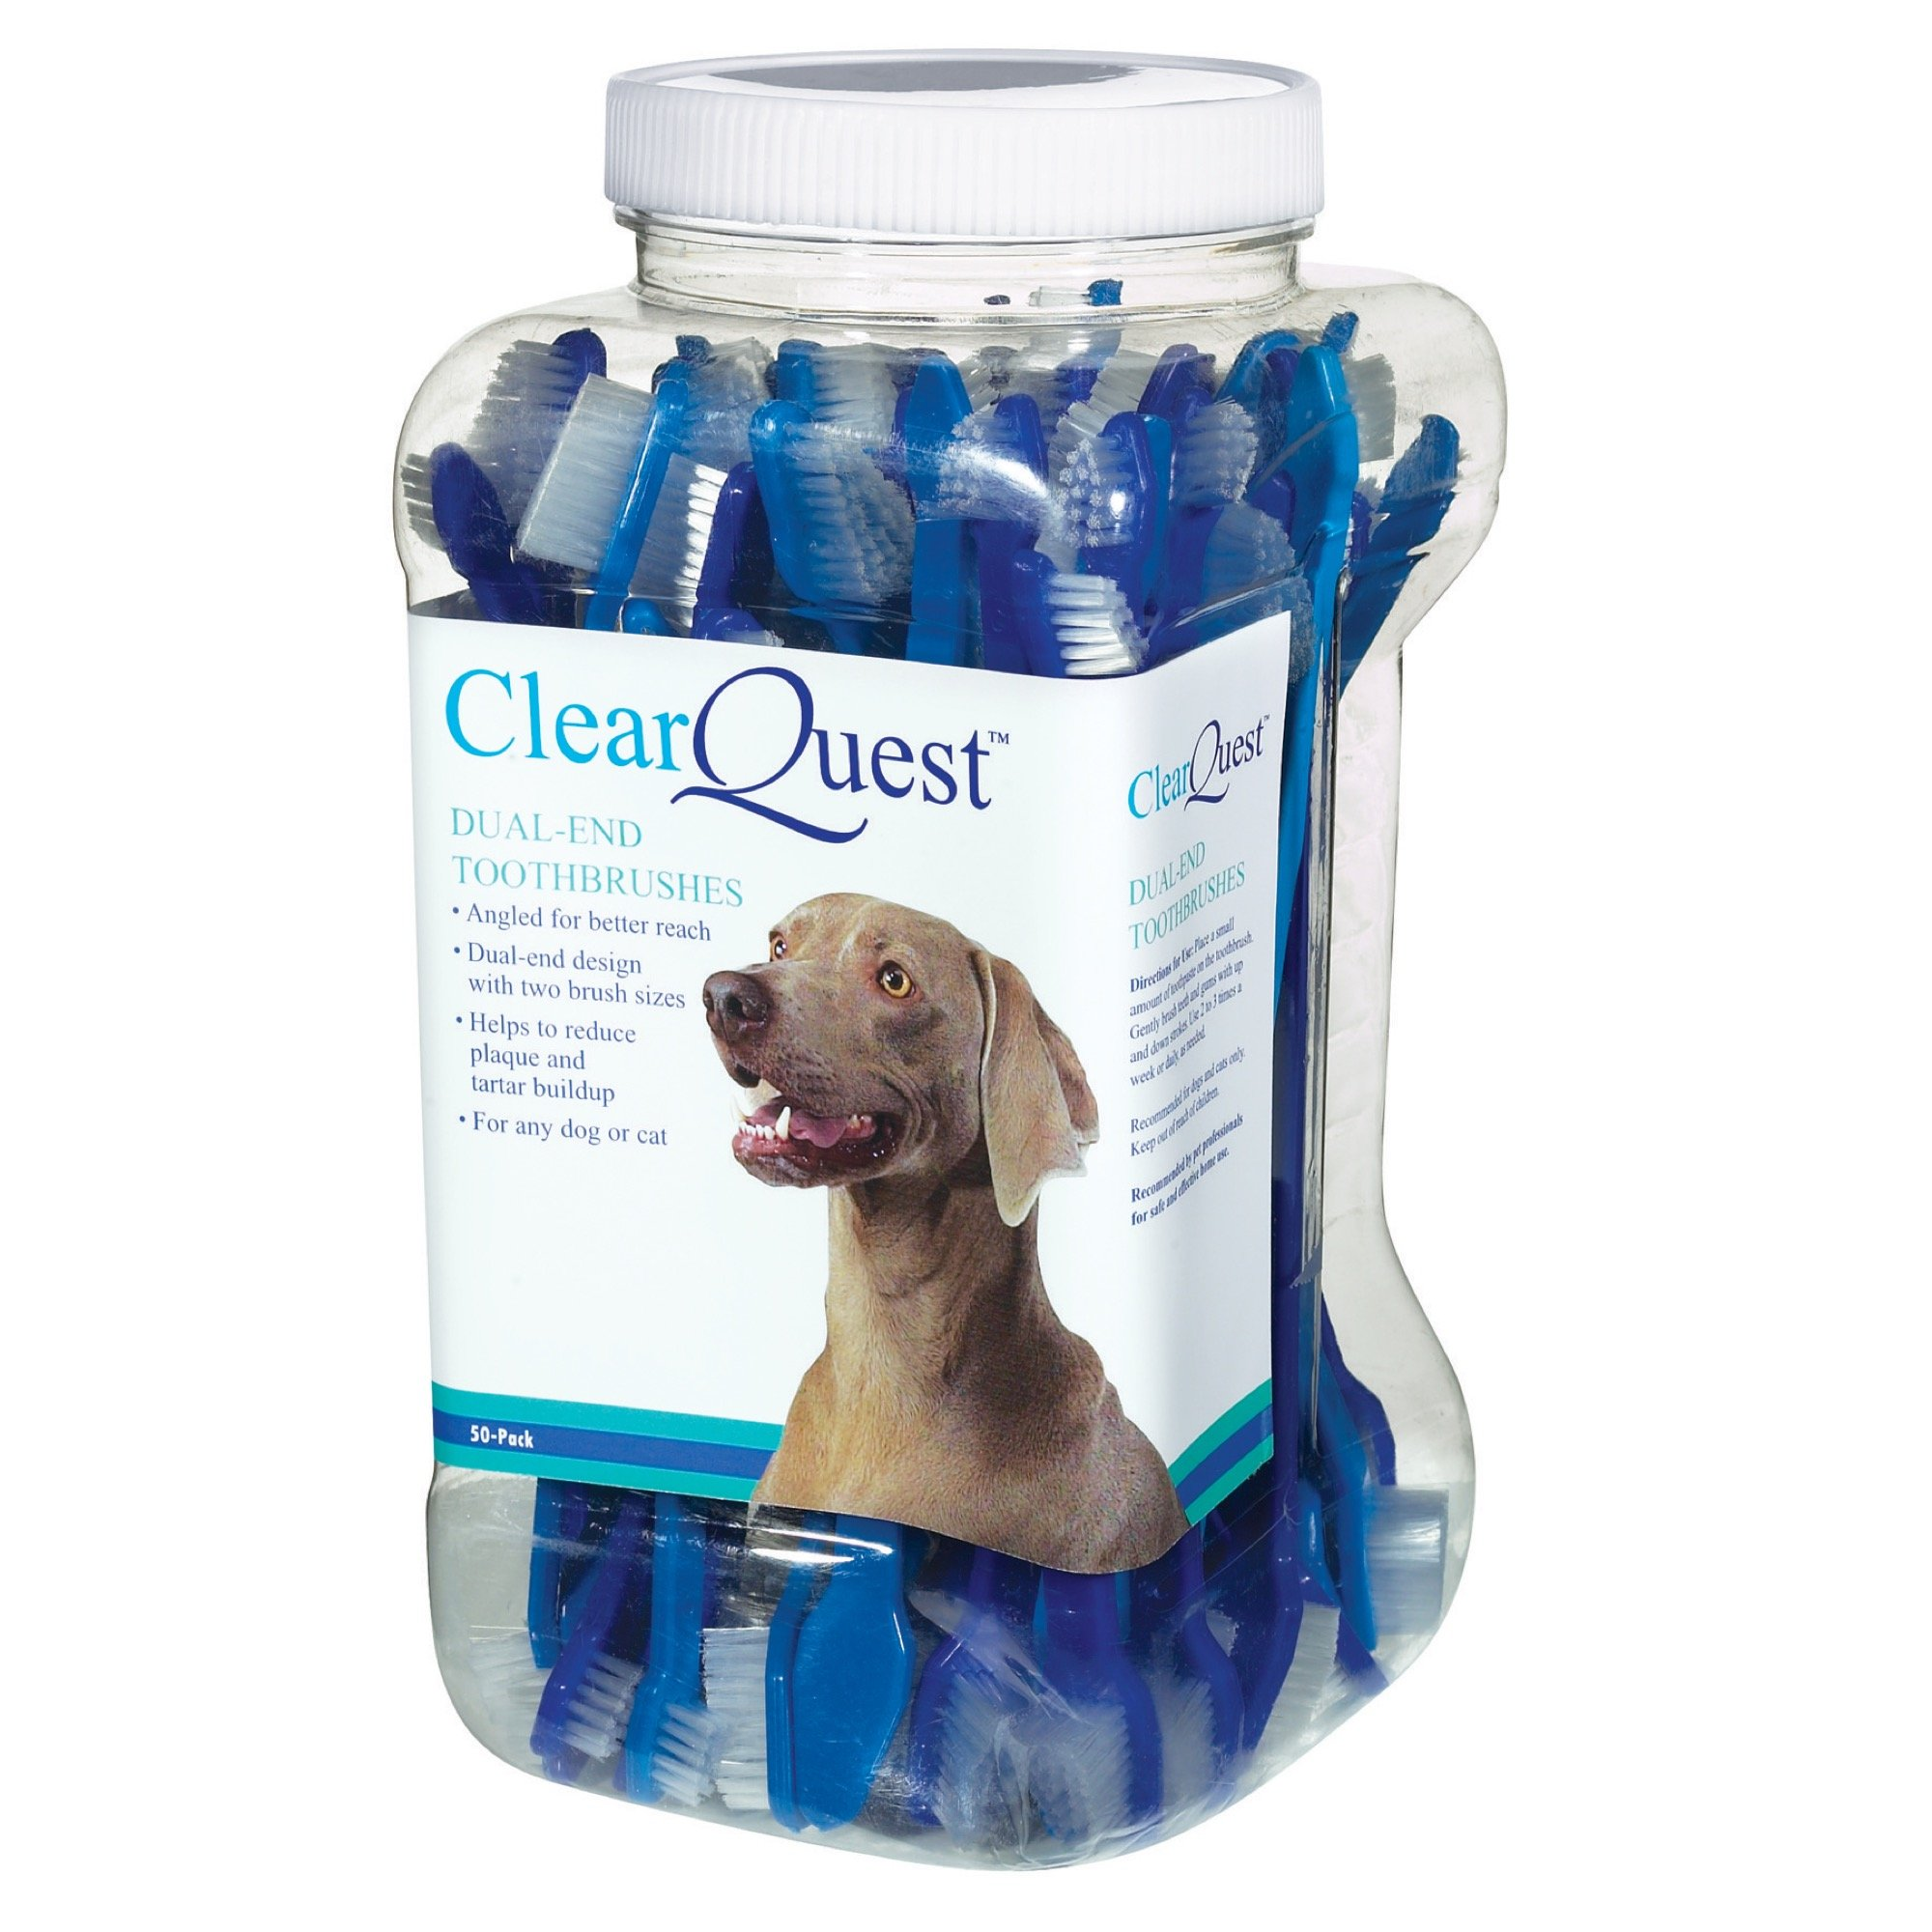 ClearQuest Dual-End Pet Toothbrushes, 9-Inch, 50/Canister, (Colors Vary) by ClearQuest